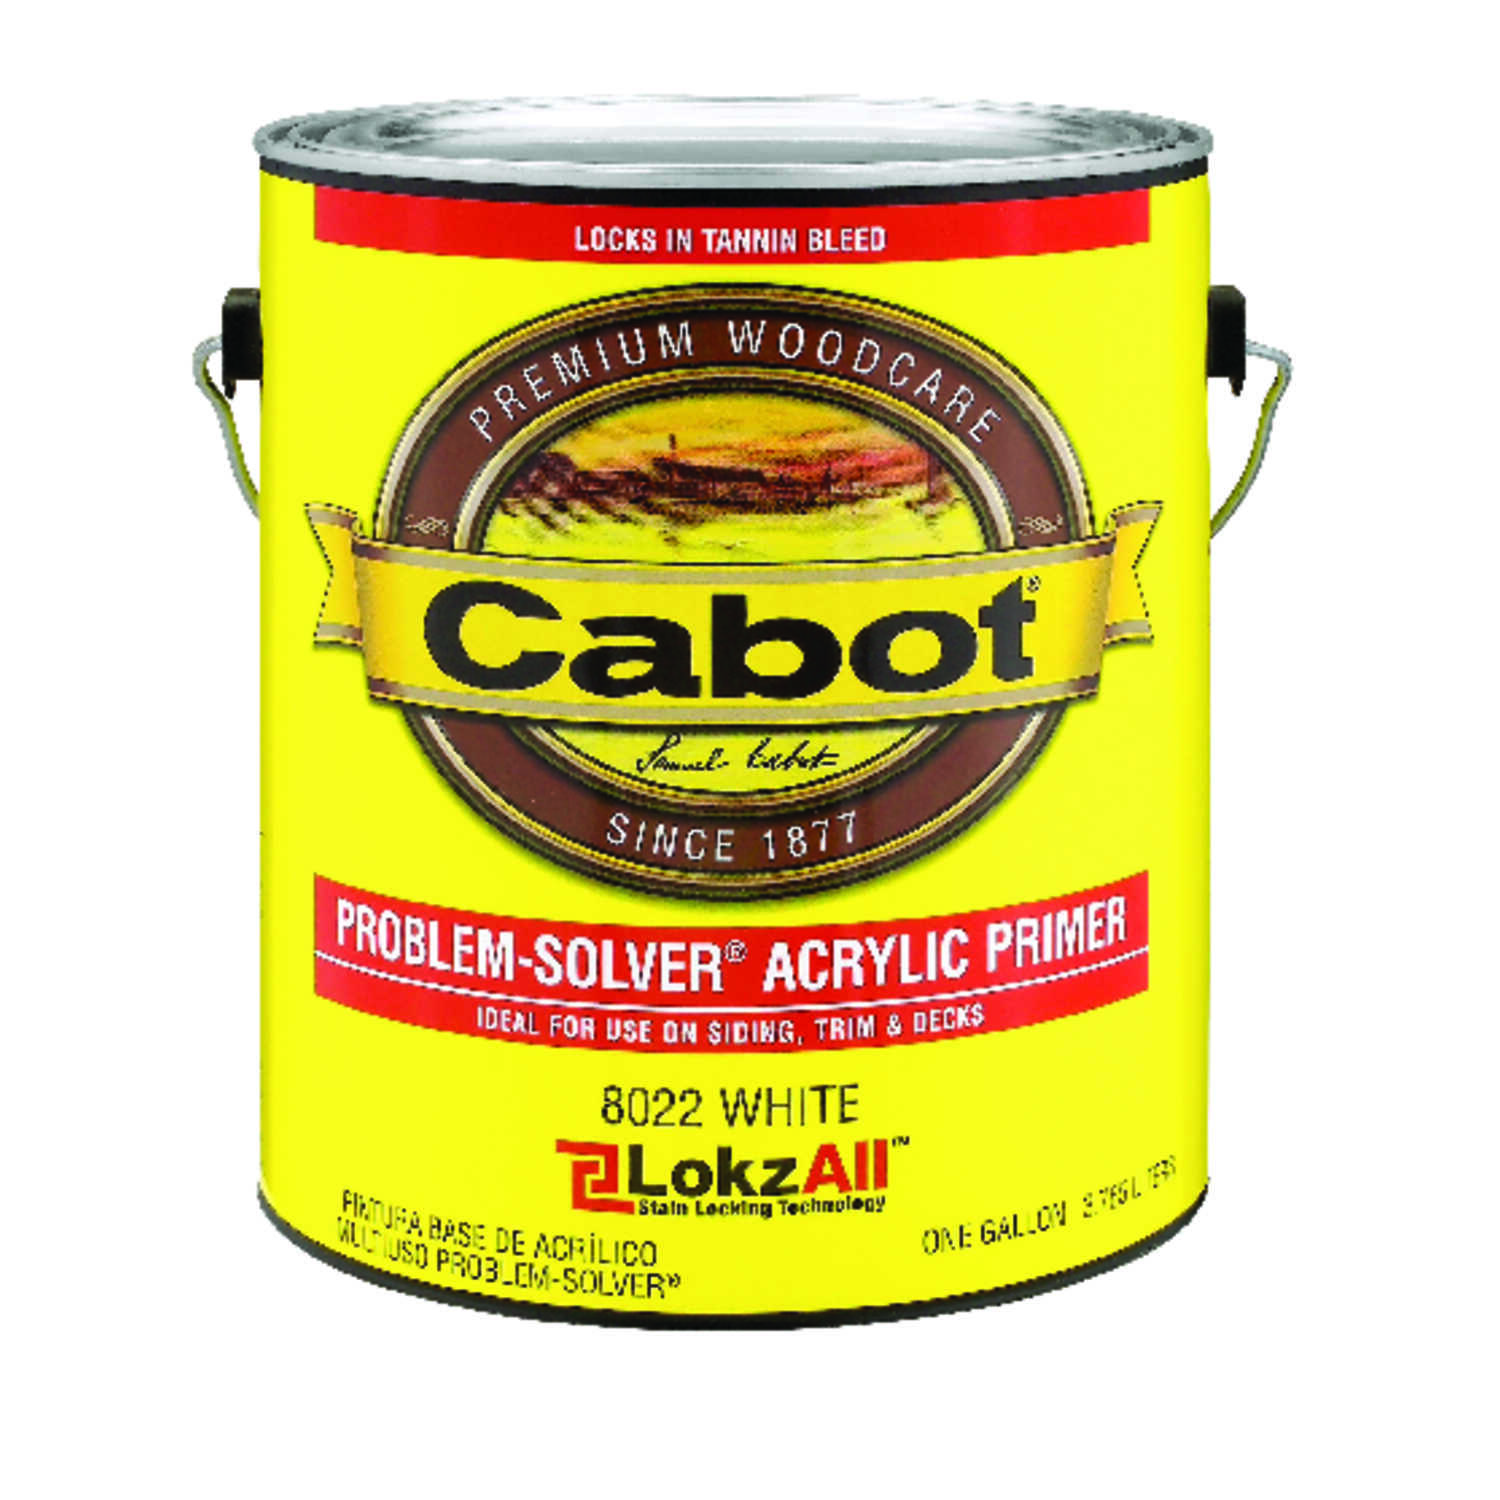 Cabot  Problem-Solver  Solid Color  White  Acrylic  Primer  For Wood 1 gal.